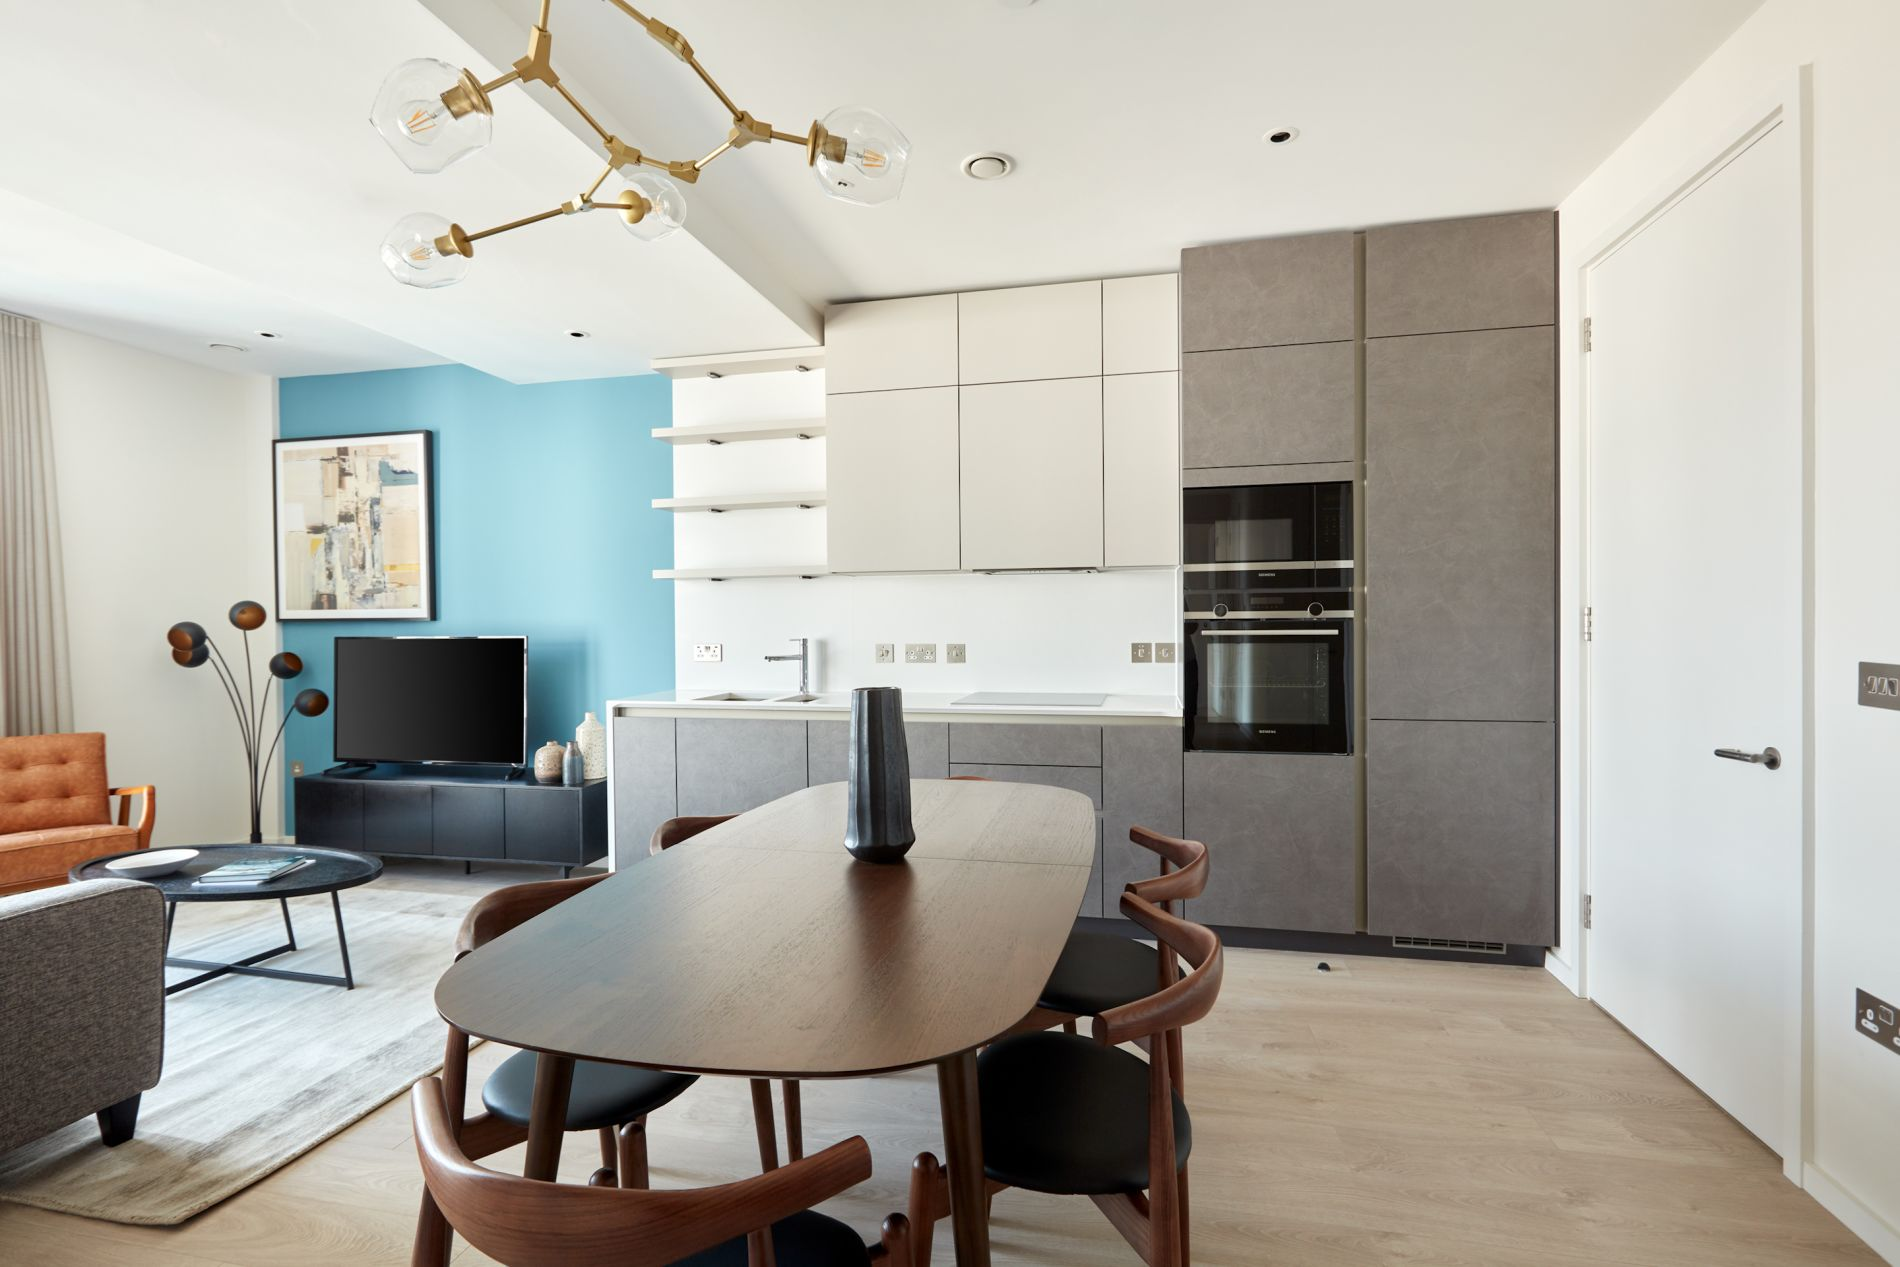 Stunning serviced apartment in Dublin with a rooftop terrace and instant book option